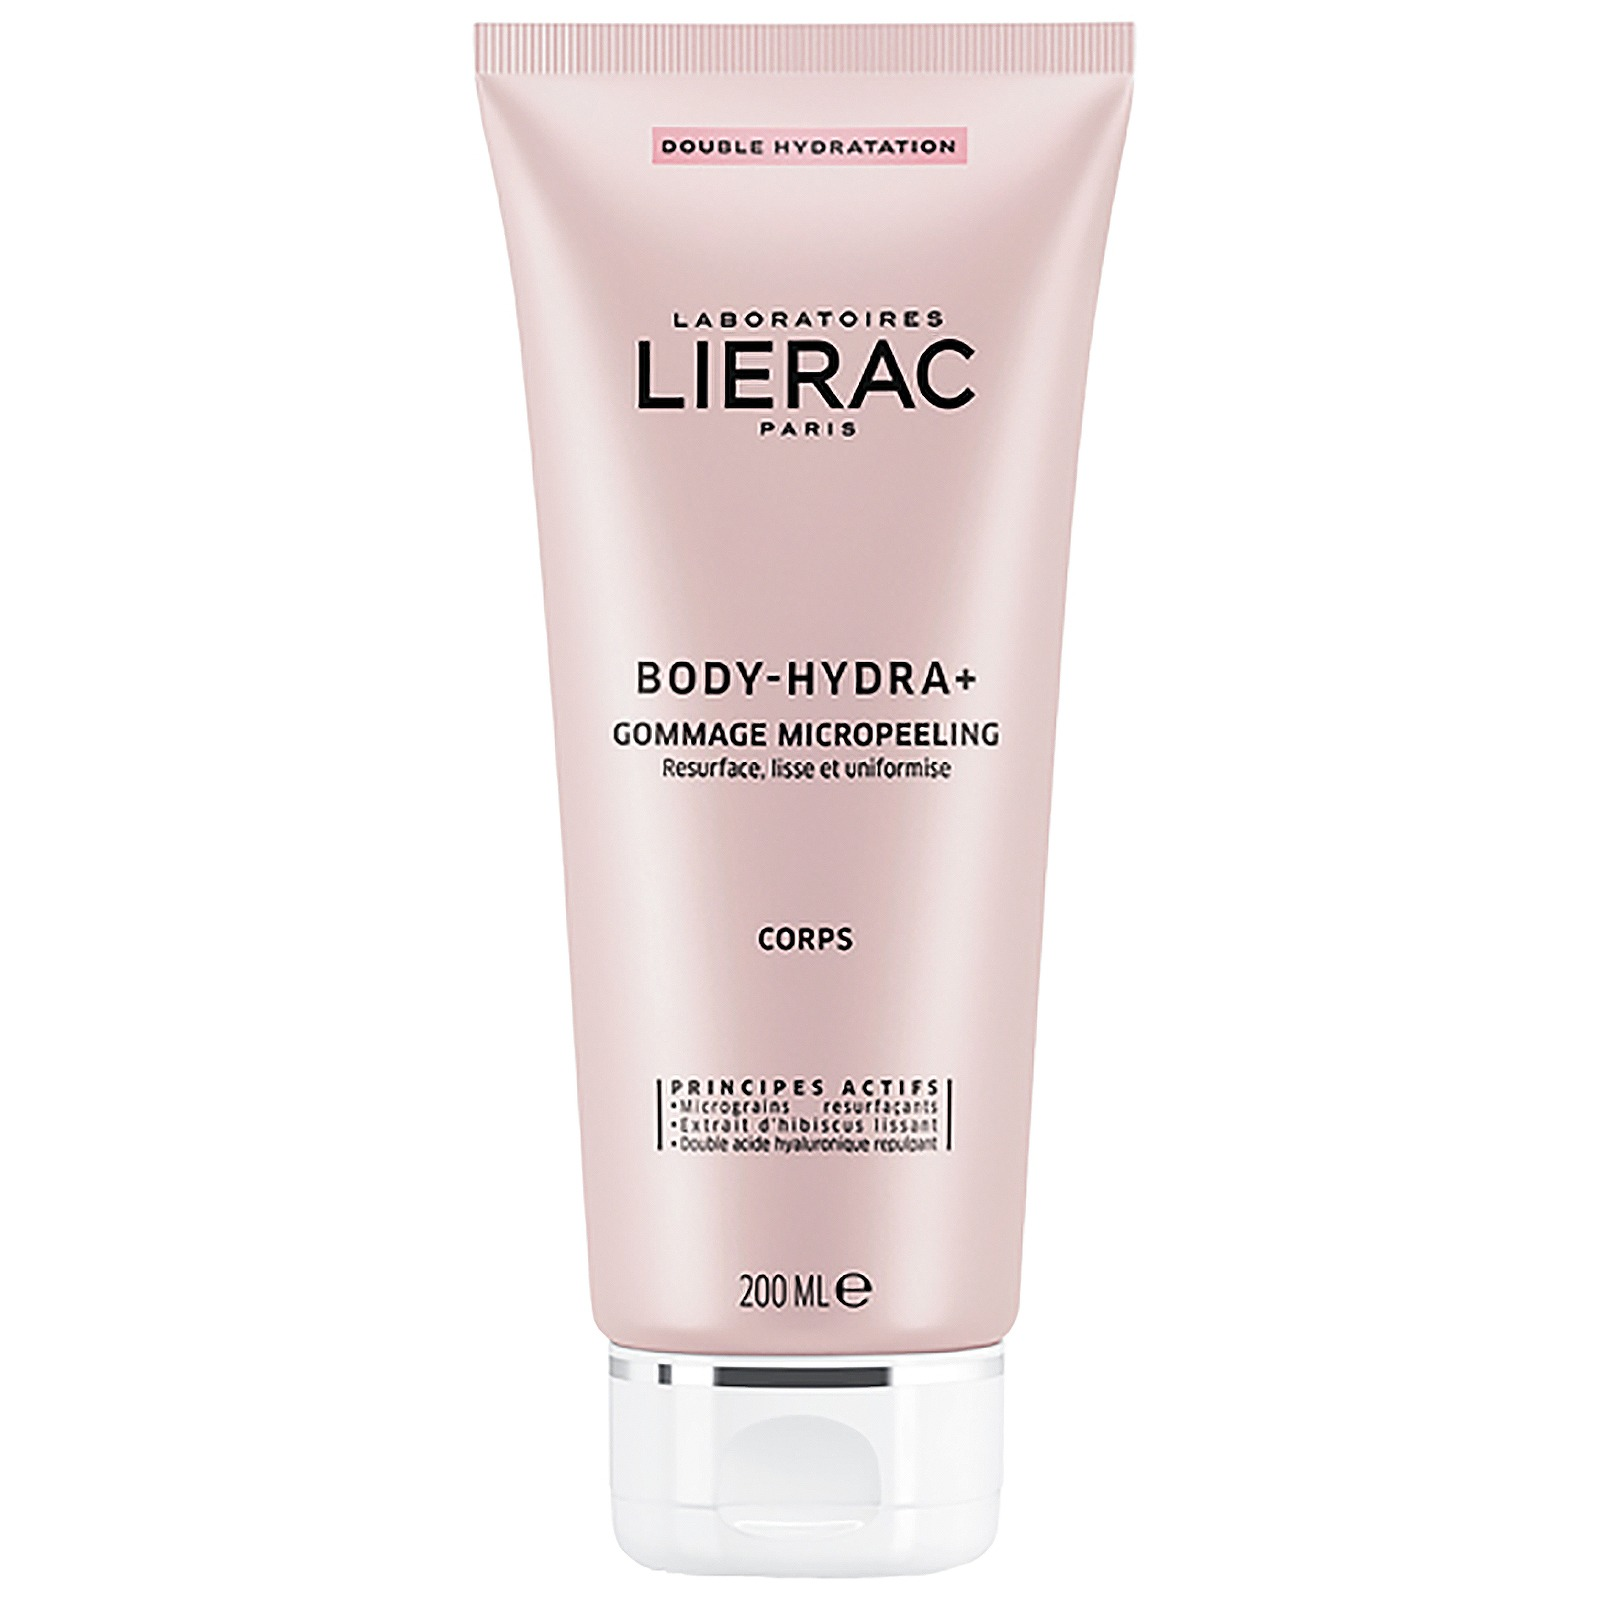 Lierac Body-Hydra+ Micropeeling Scrub 200ml